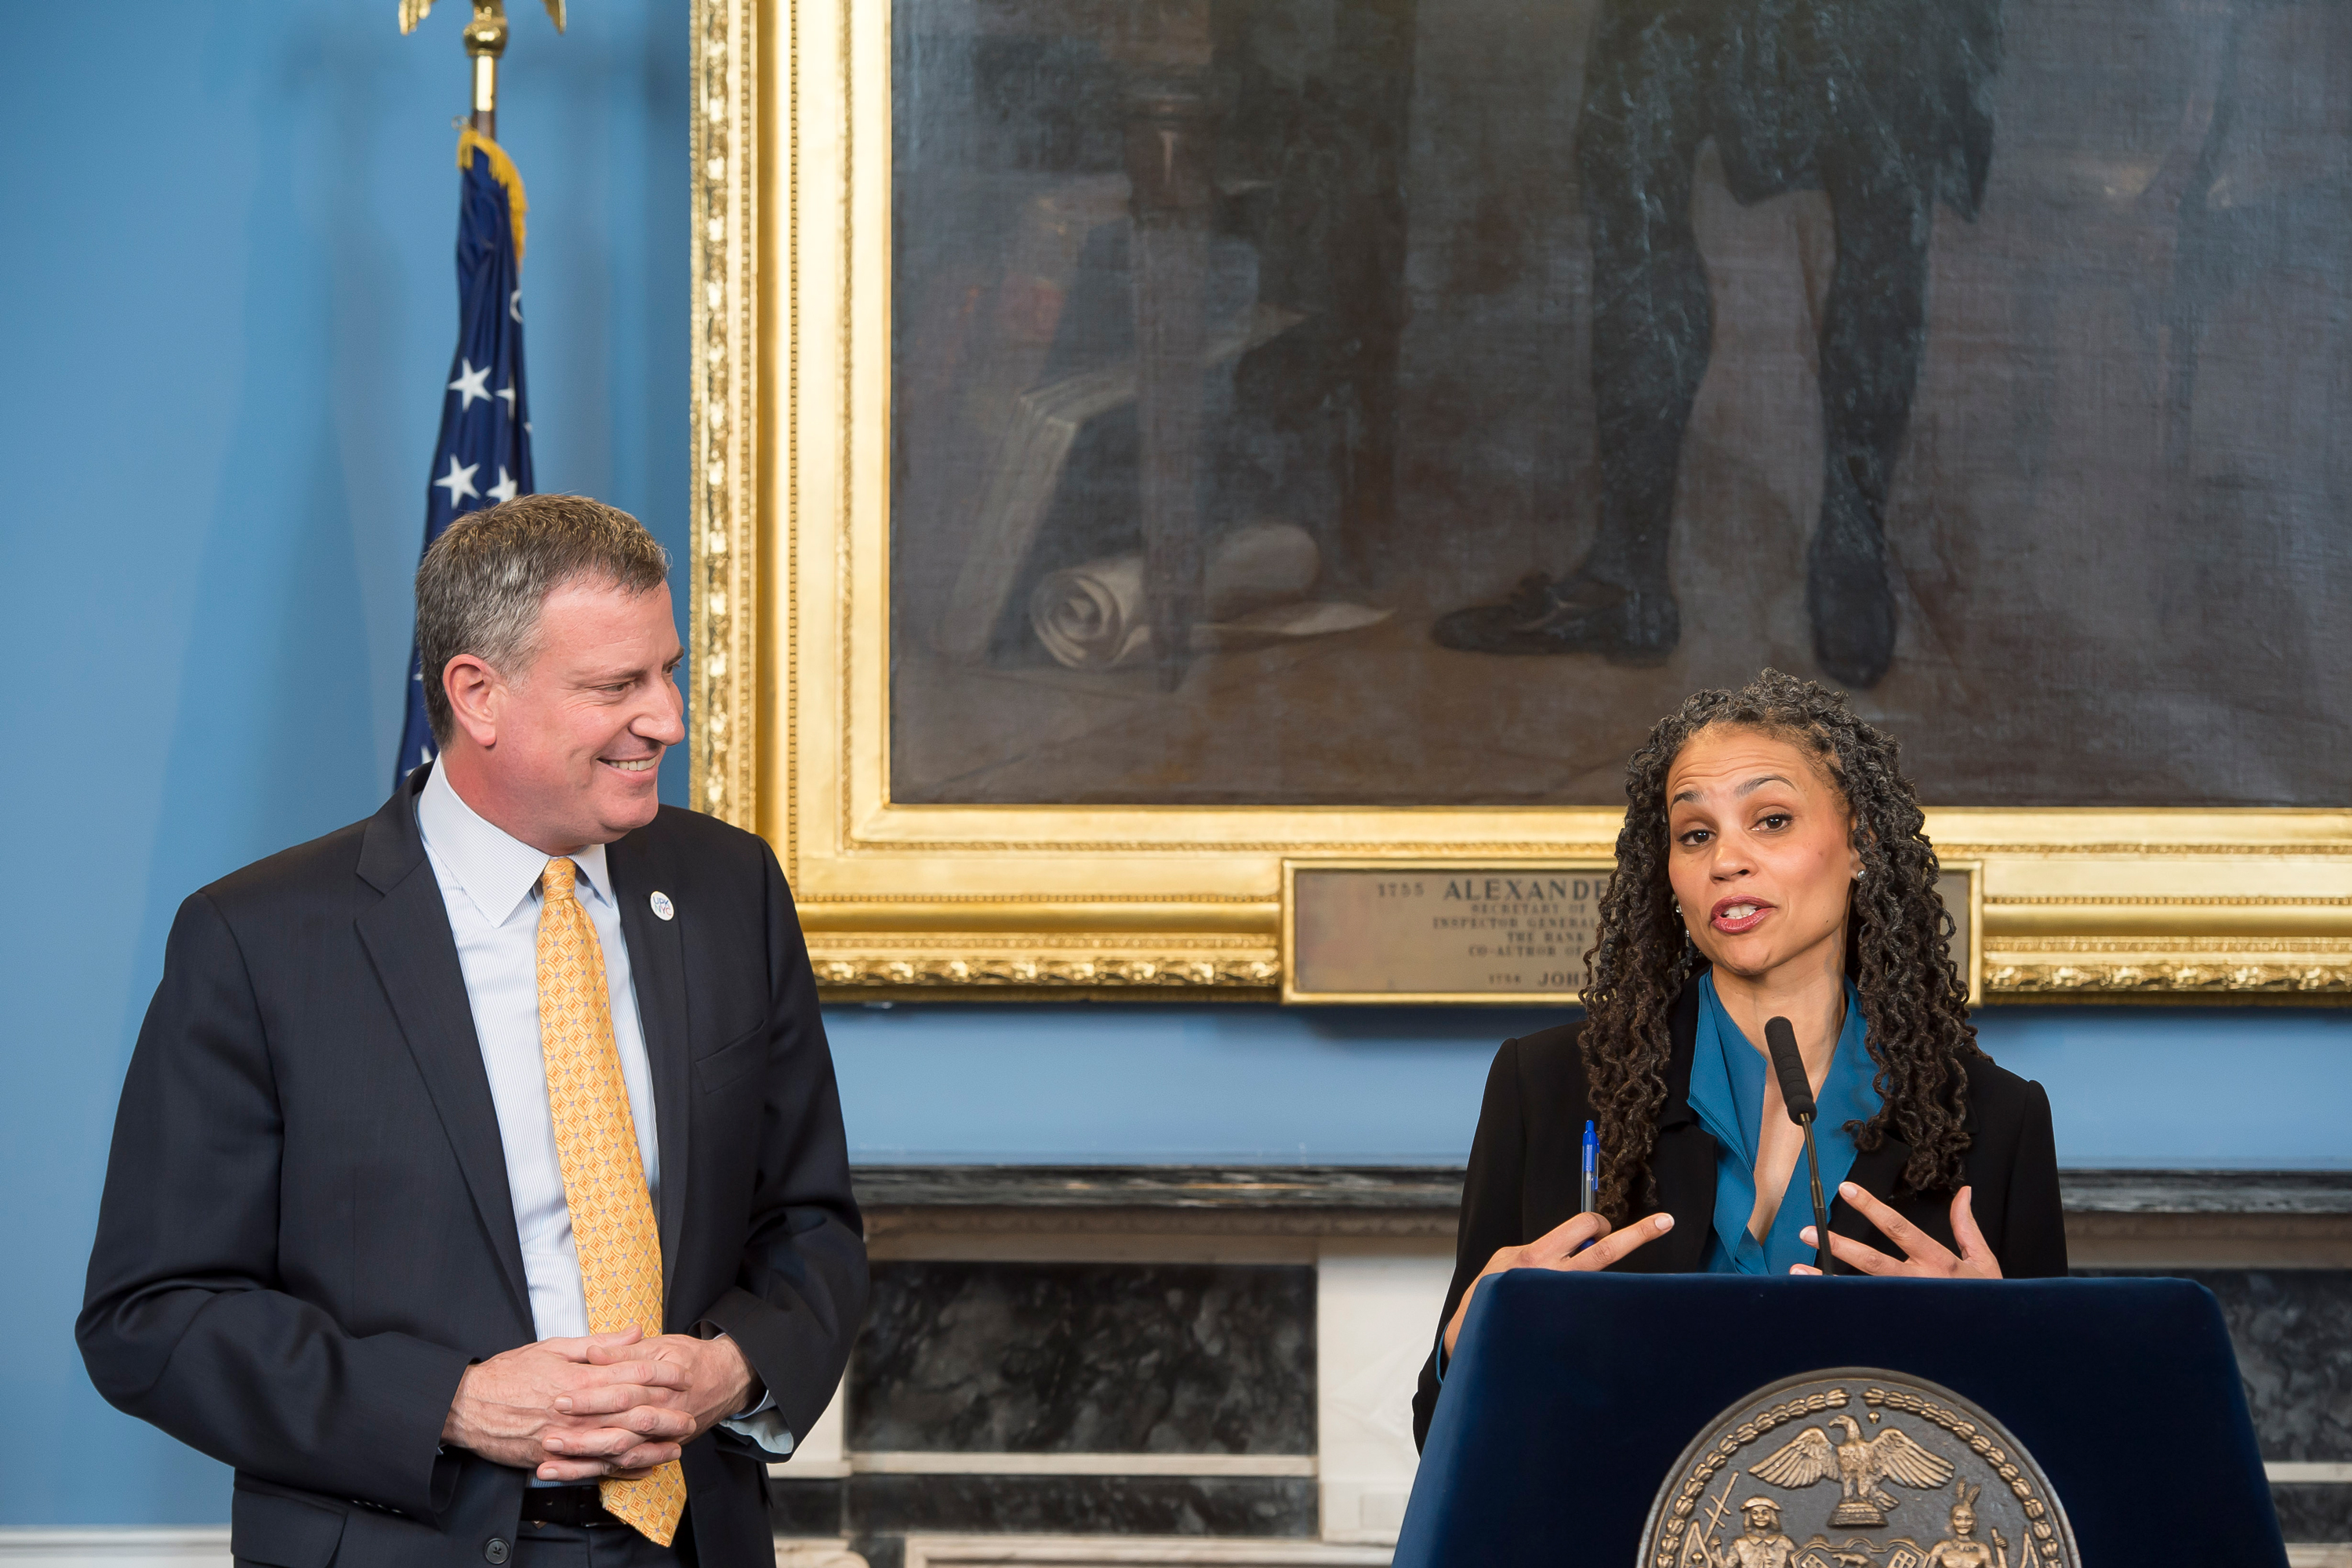 Mayor Bill de Blasio announces Maya Wiley's appointment as counselor to the mayor in City Hall's Blue Room, on February 18, 2014.